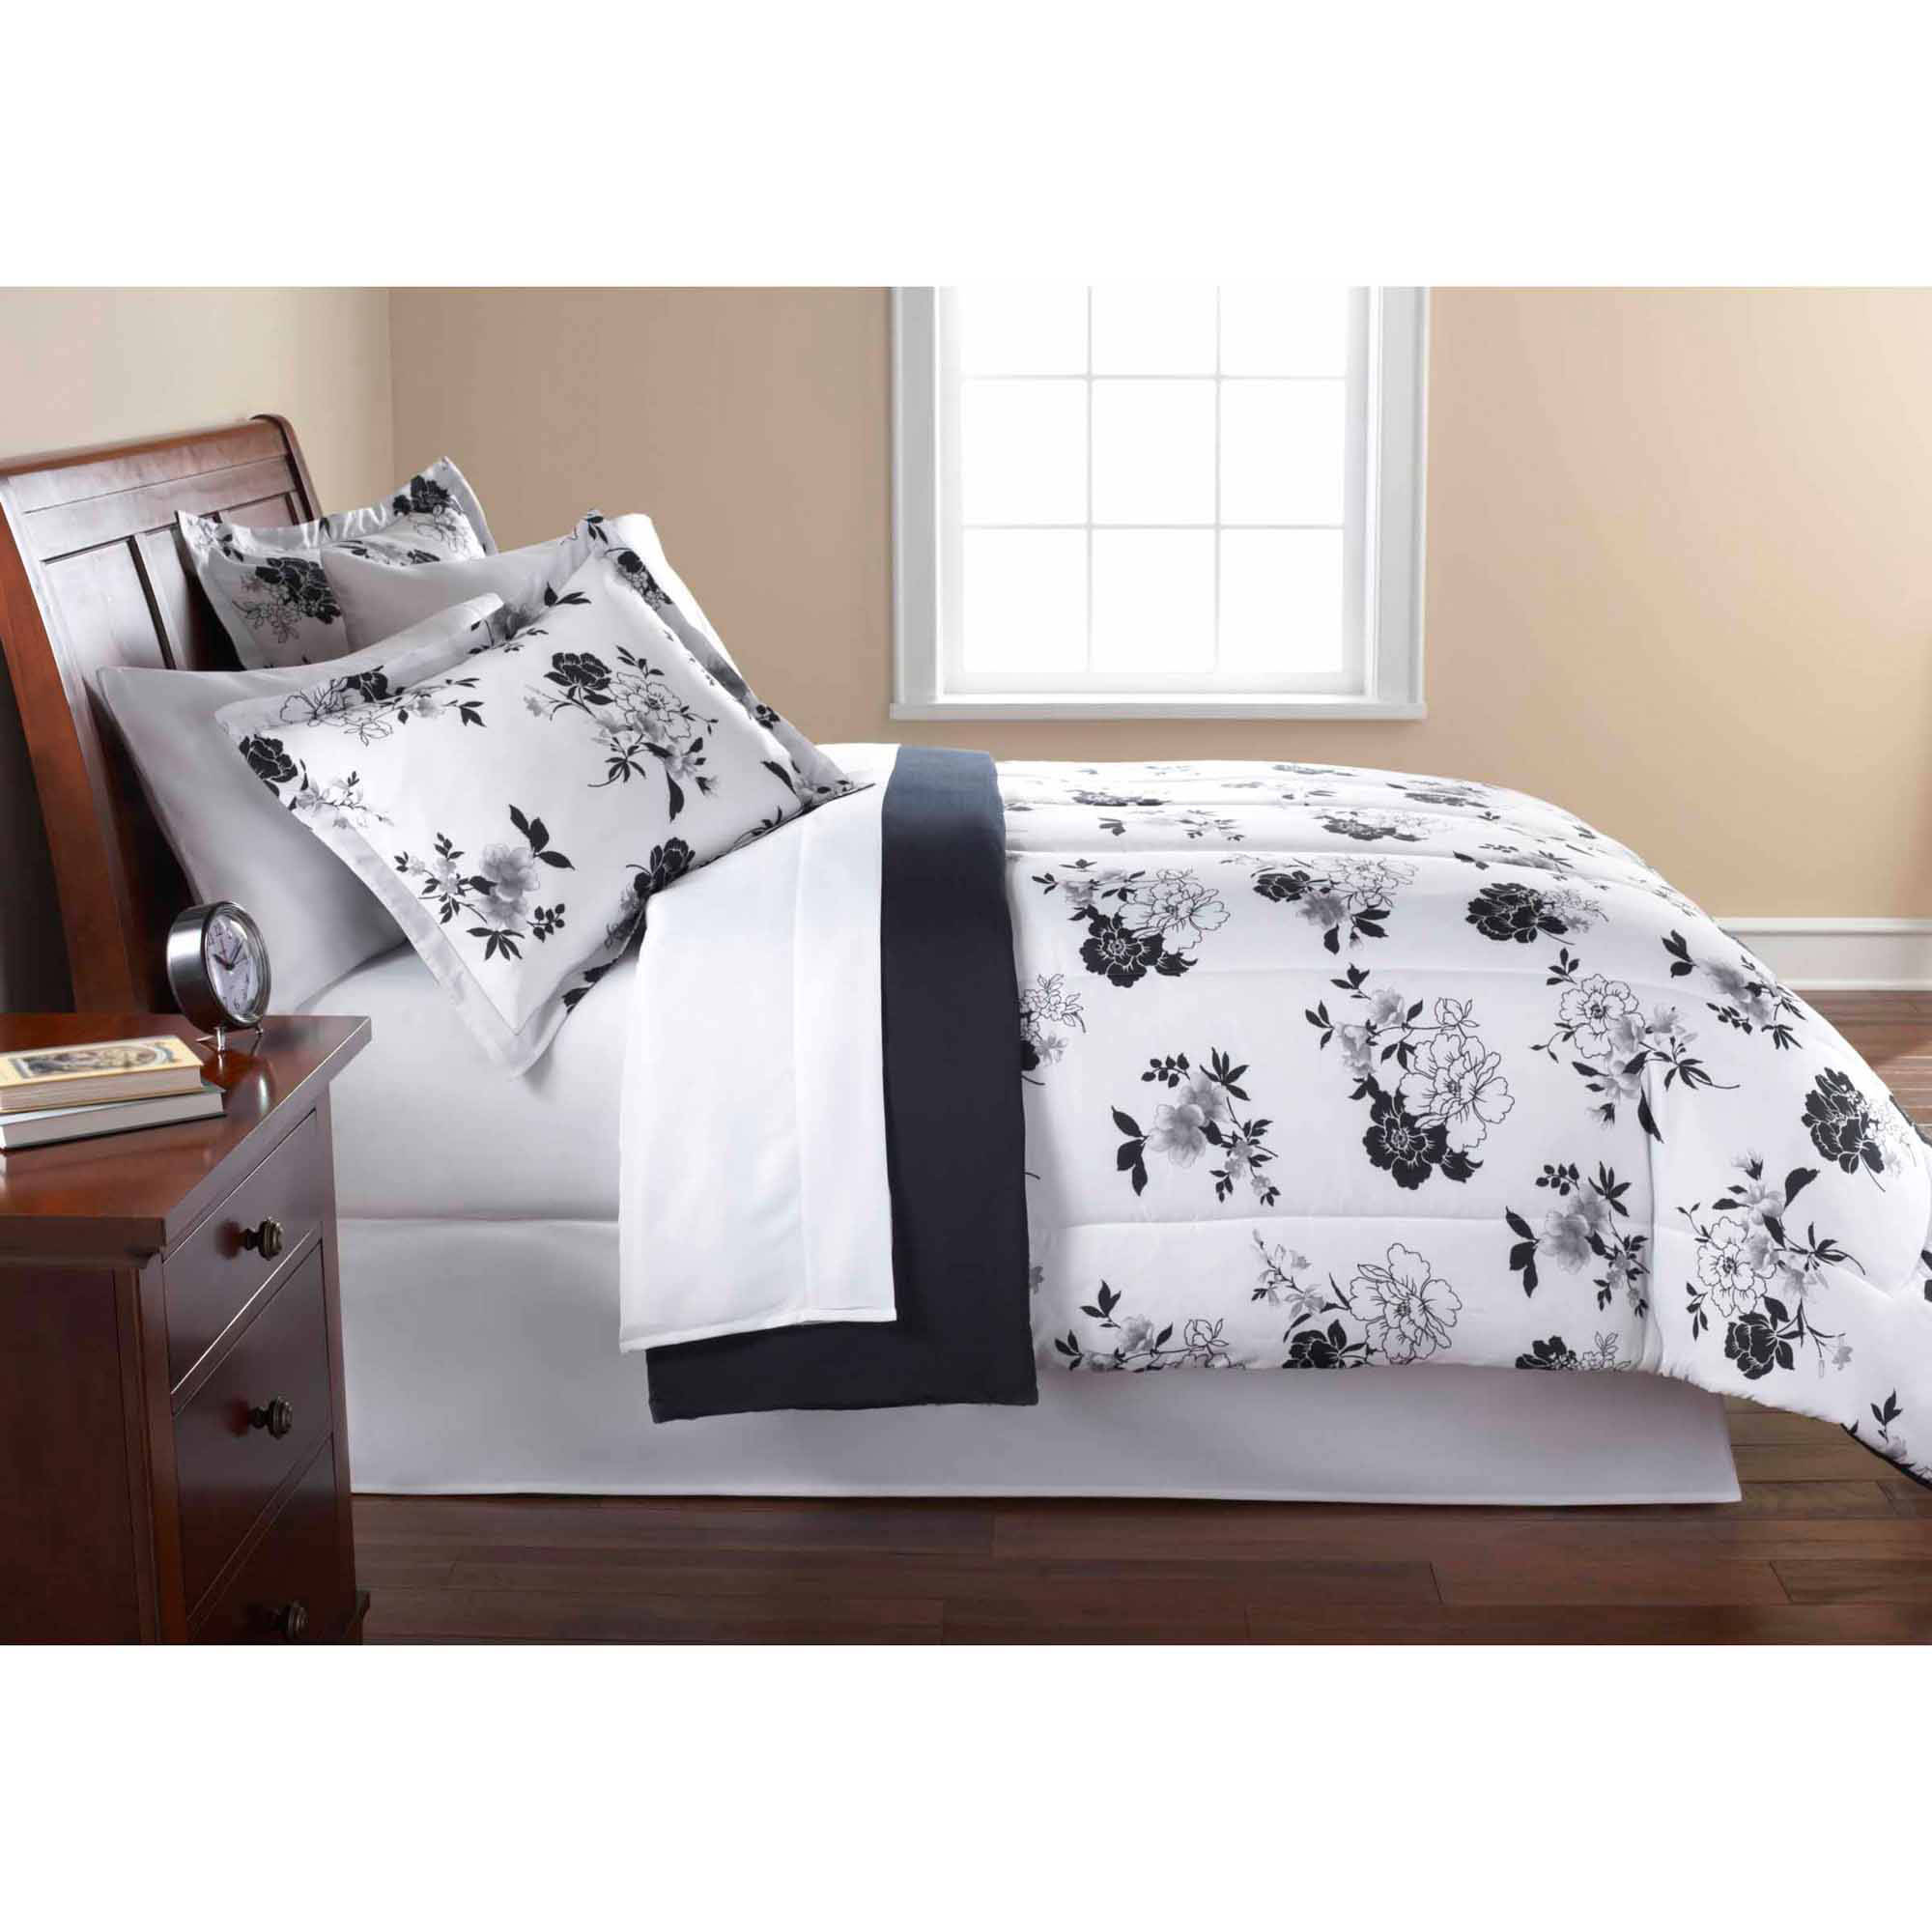 Black and white bedding walmart - Mainstays Black And White Floral Bed In A Bag Bedding Comforter Set Walmart Com